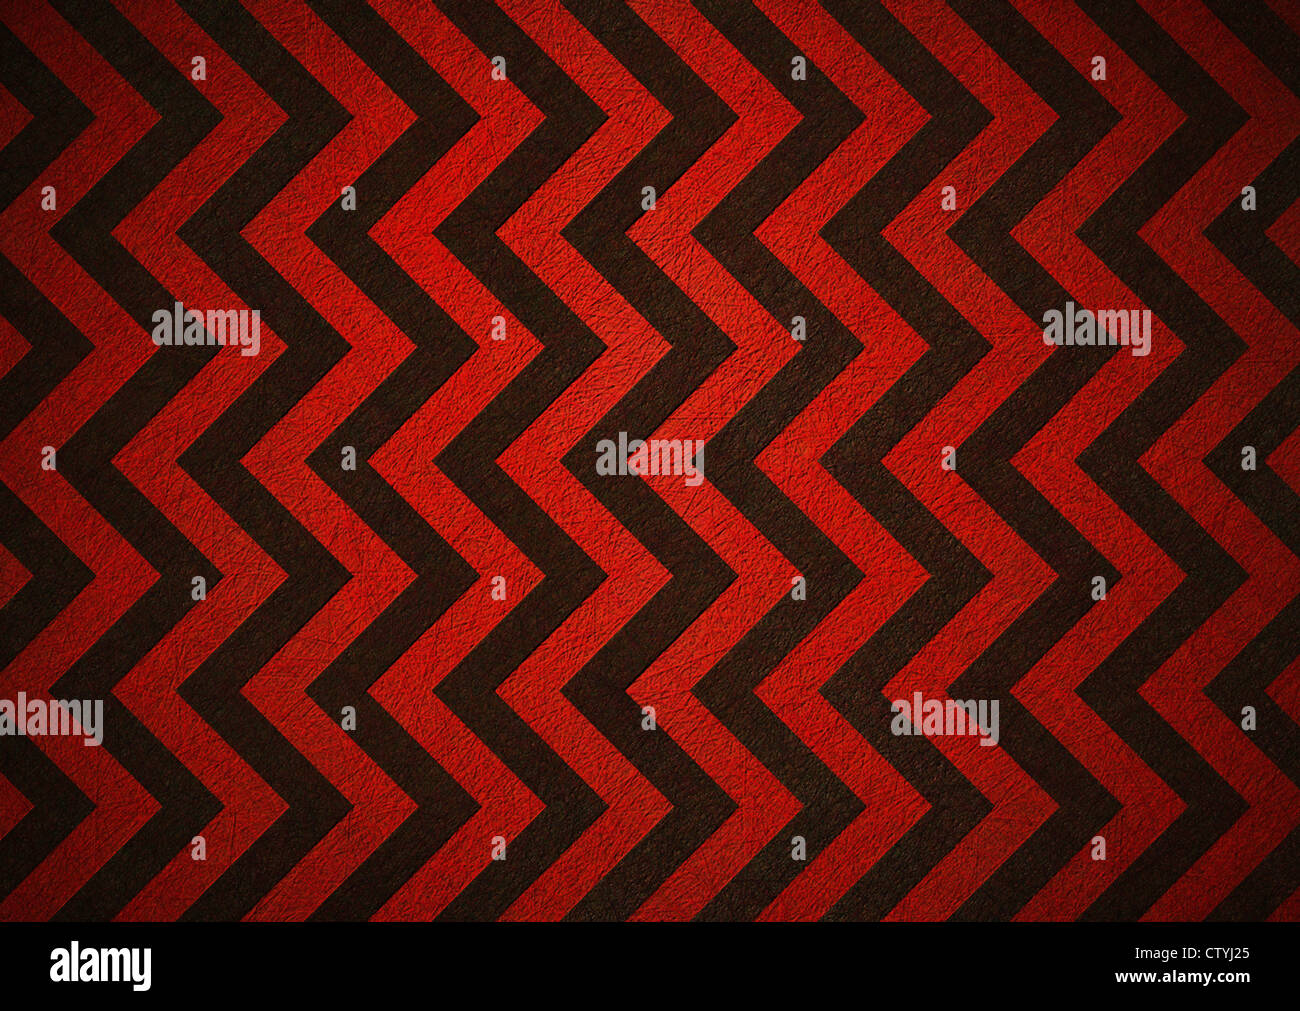 black and red retro background of chevron stripe pattern - Stock Image